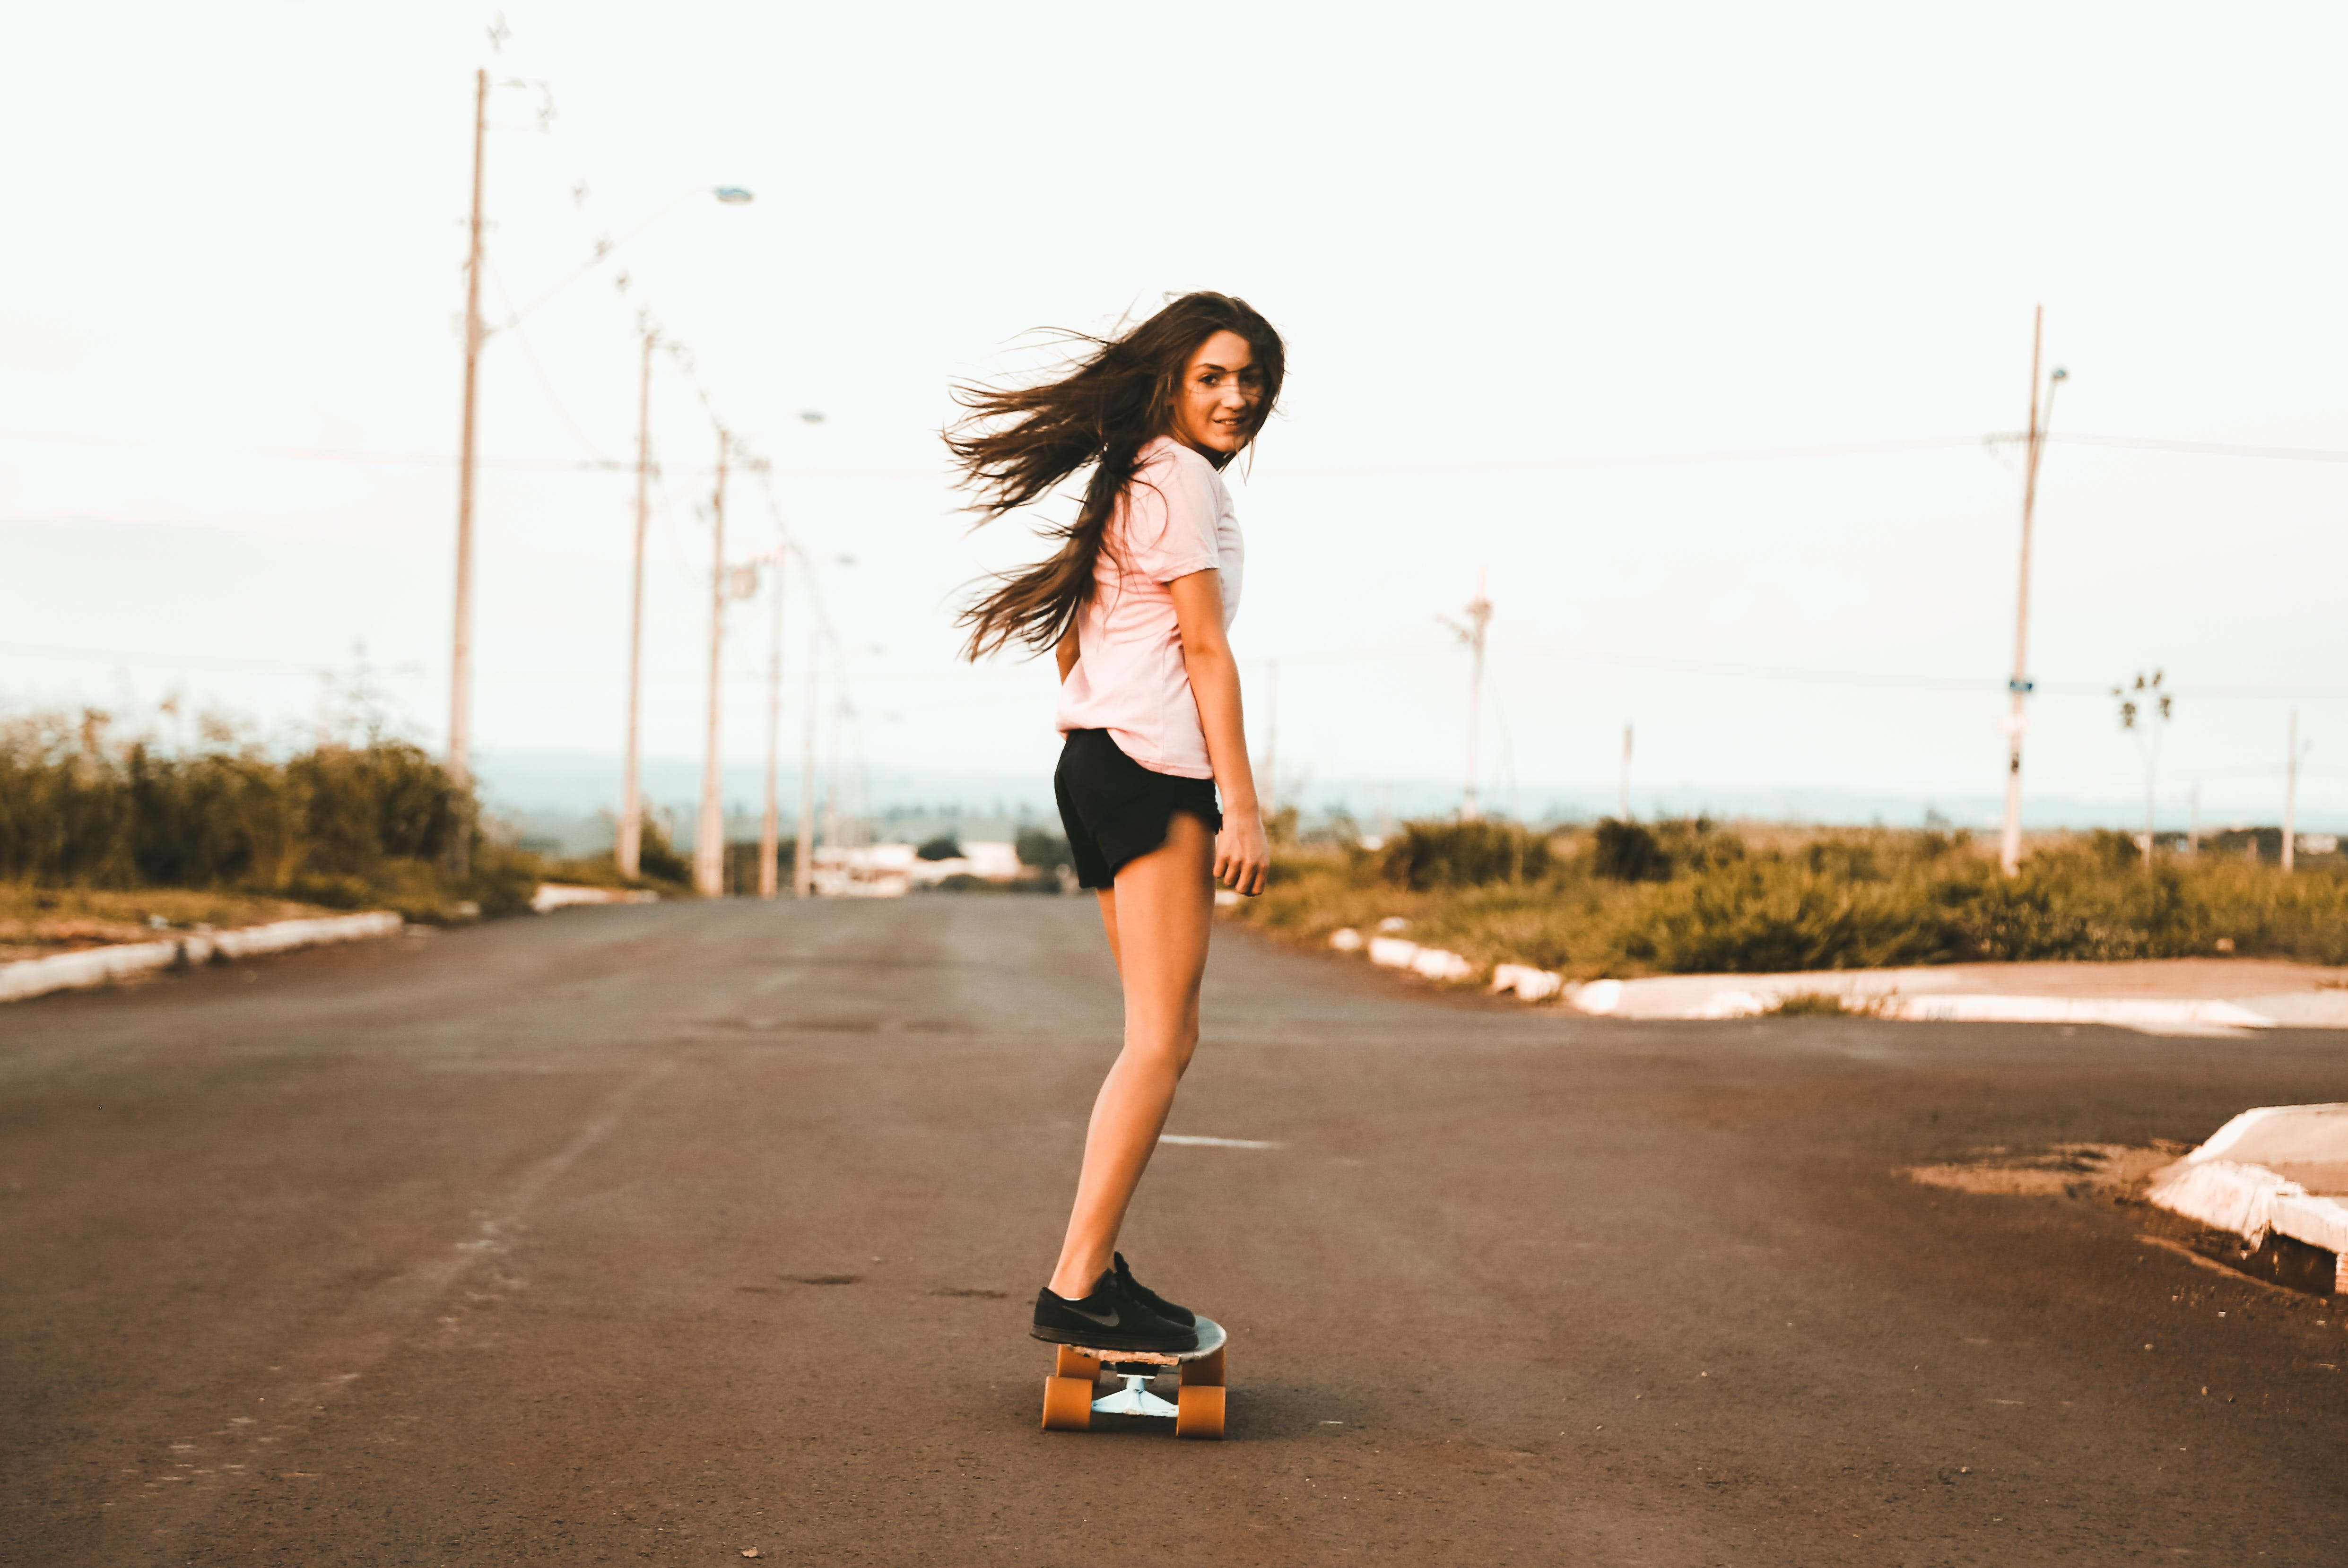 Woman Riding Skateboard at the Road